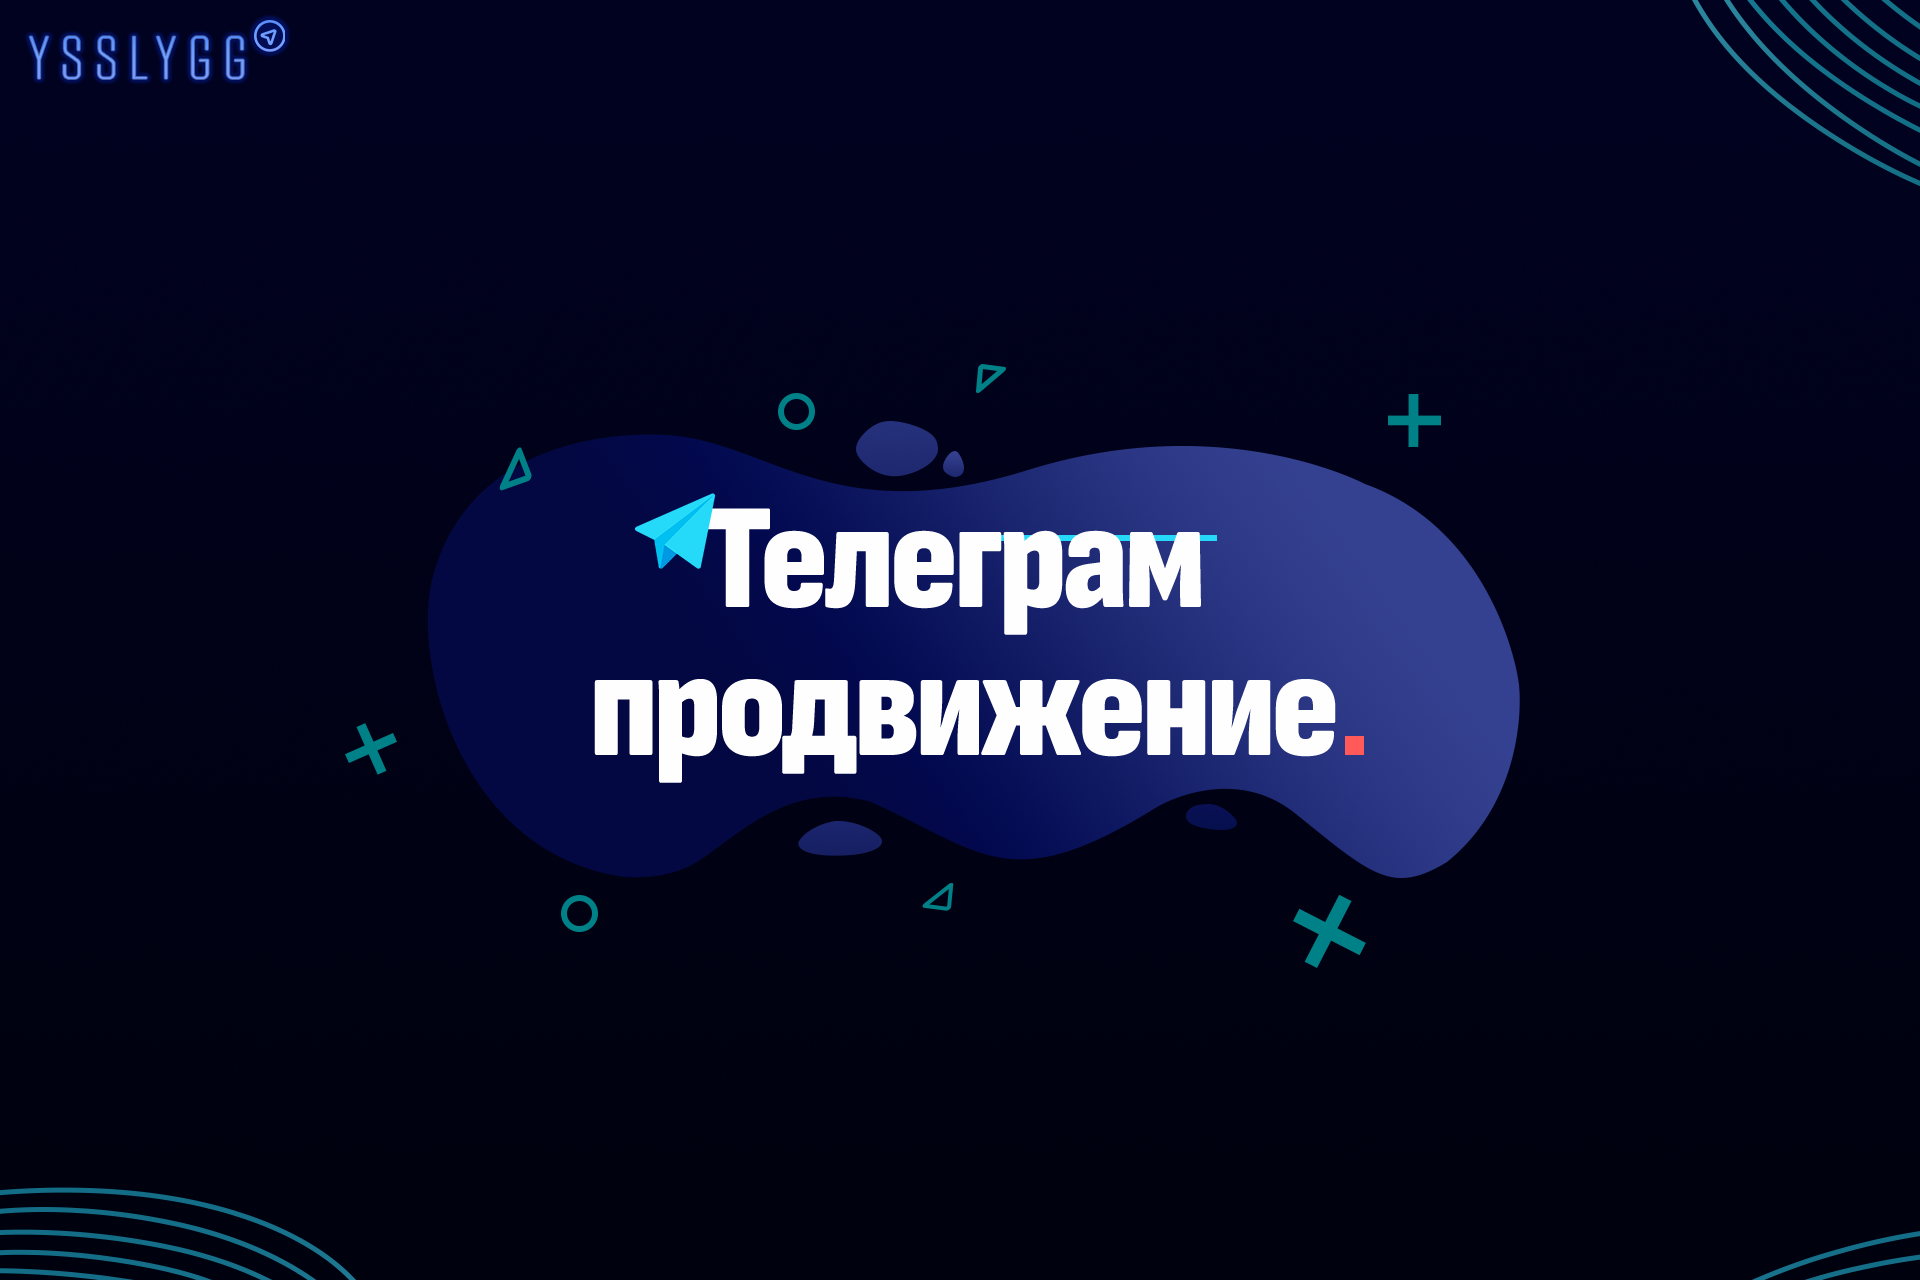 https://i.ibb.co/JRGwZPM/telegram1.png